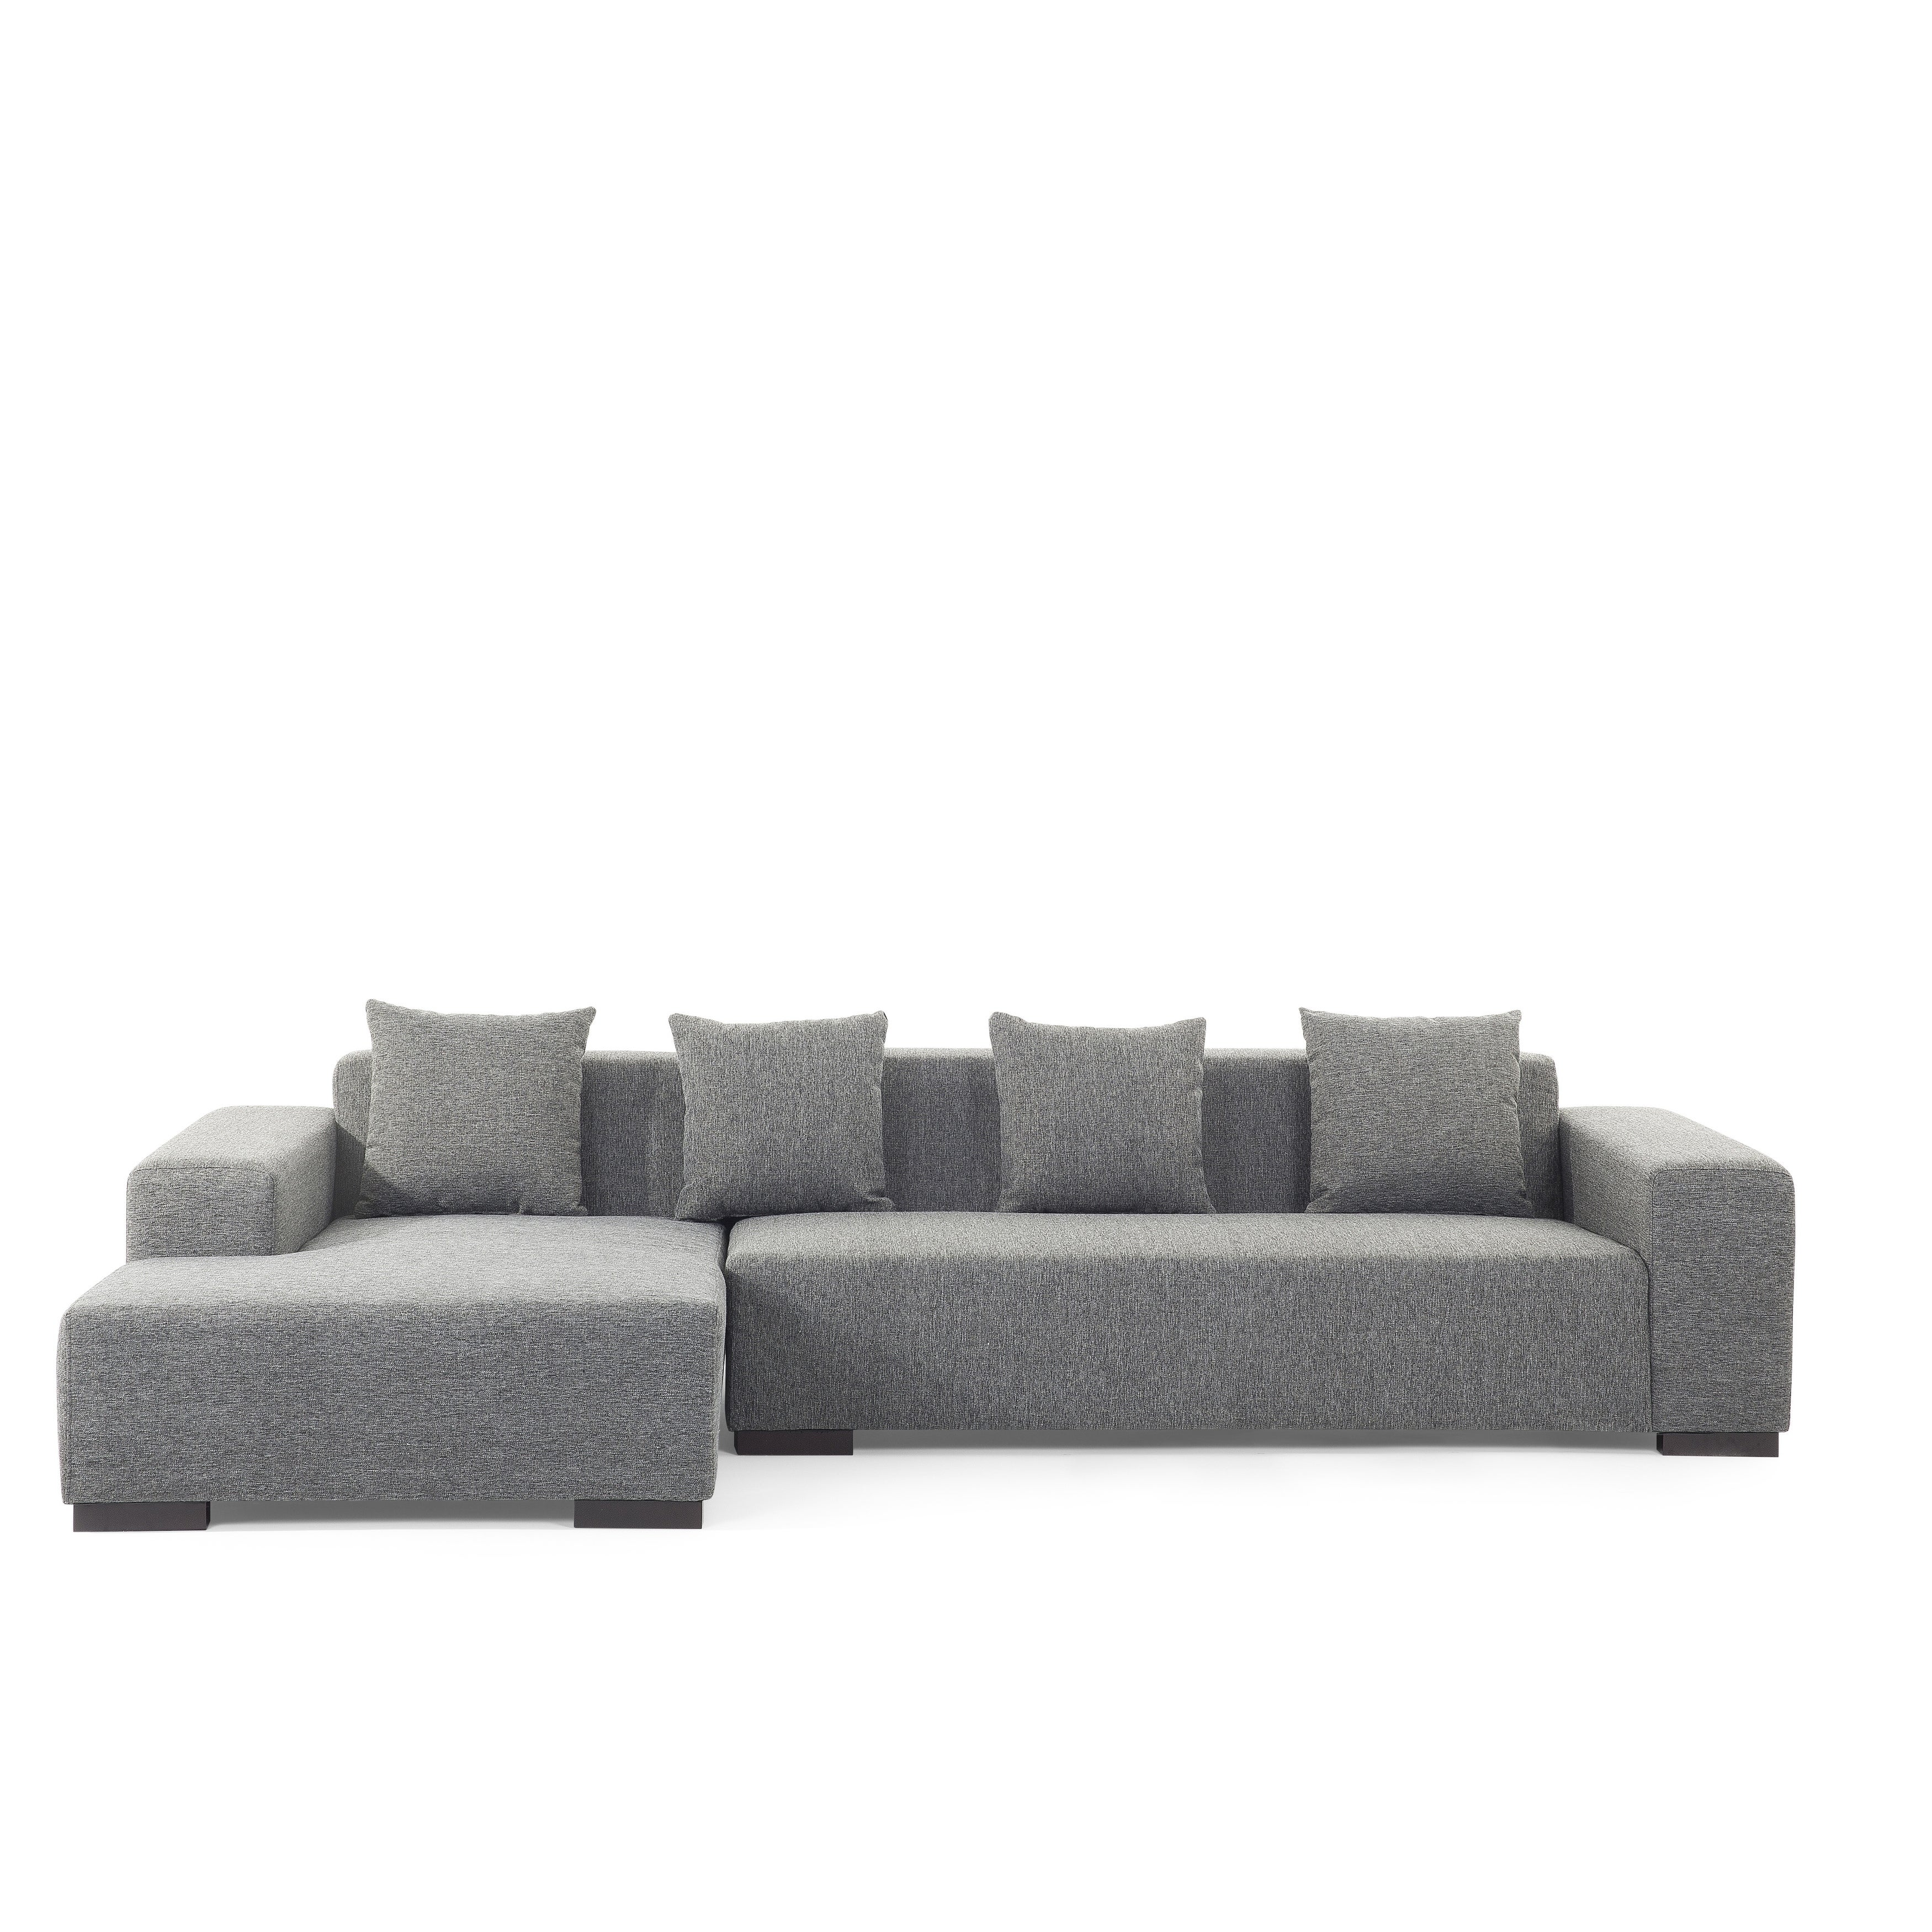 today r home shipping couch product sectional sofa fabric dark overstock lungo modern gray garden free